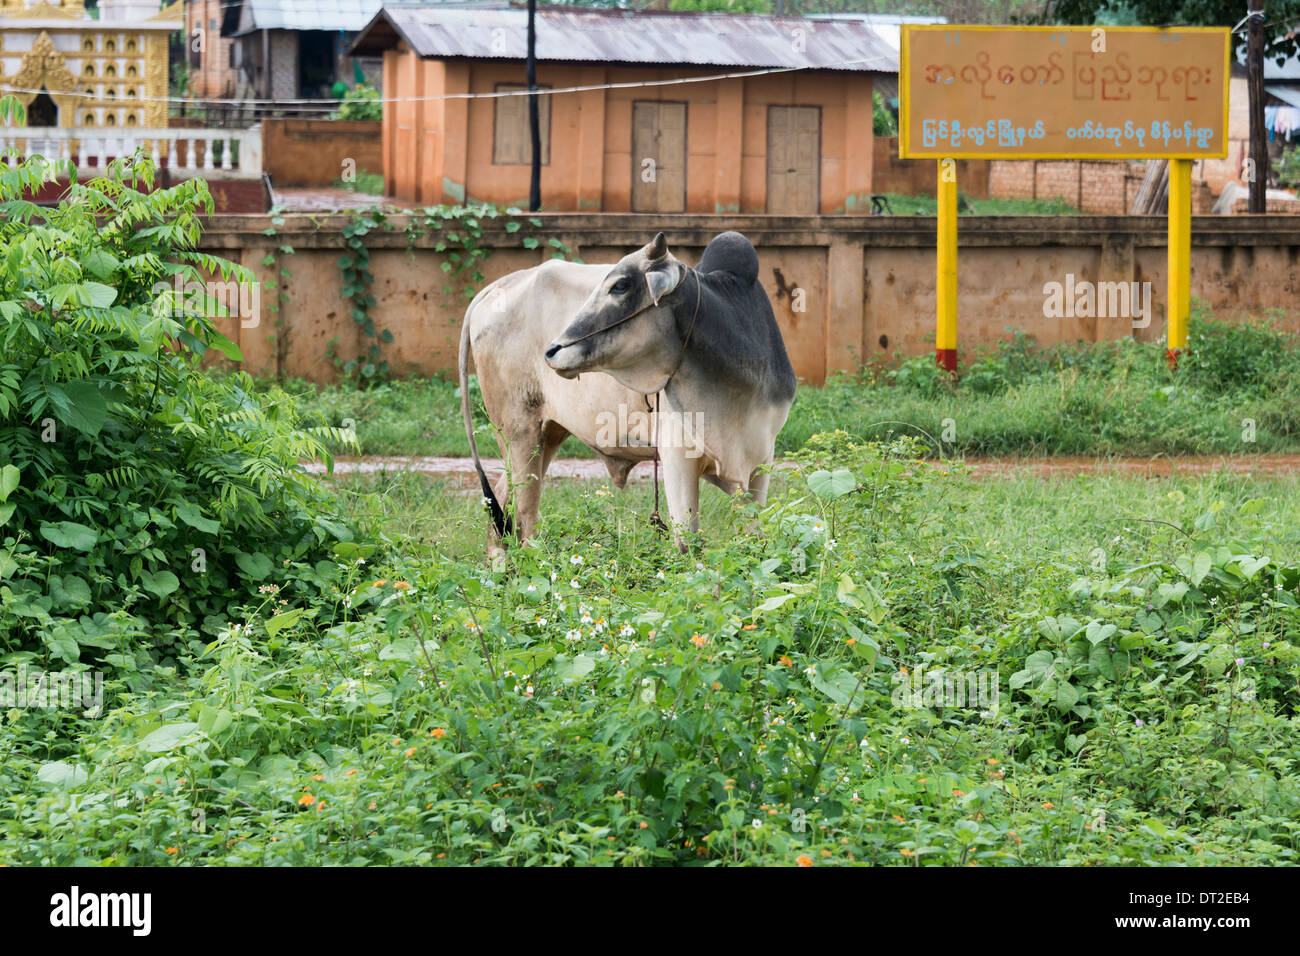 Zebu (Brahman cow) by the railway line in a village, Mandalay to Pyin Oo Lwin rail line, Myanmar - Stock Image